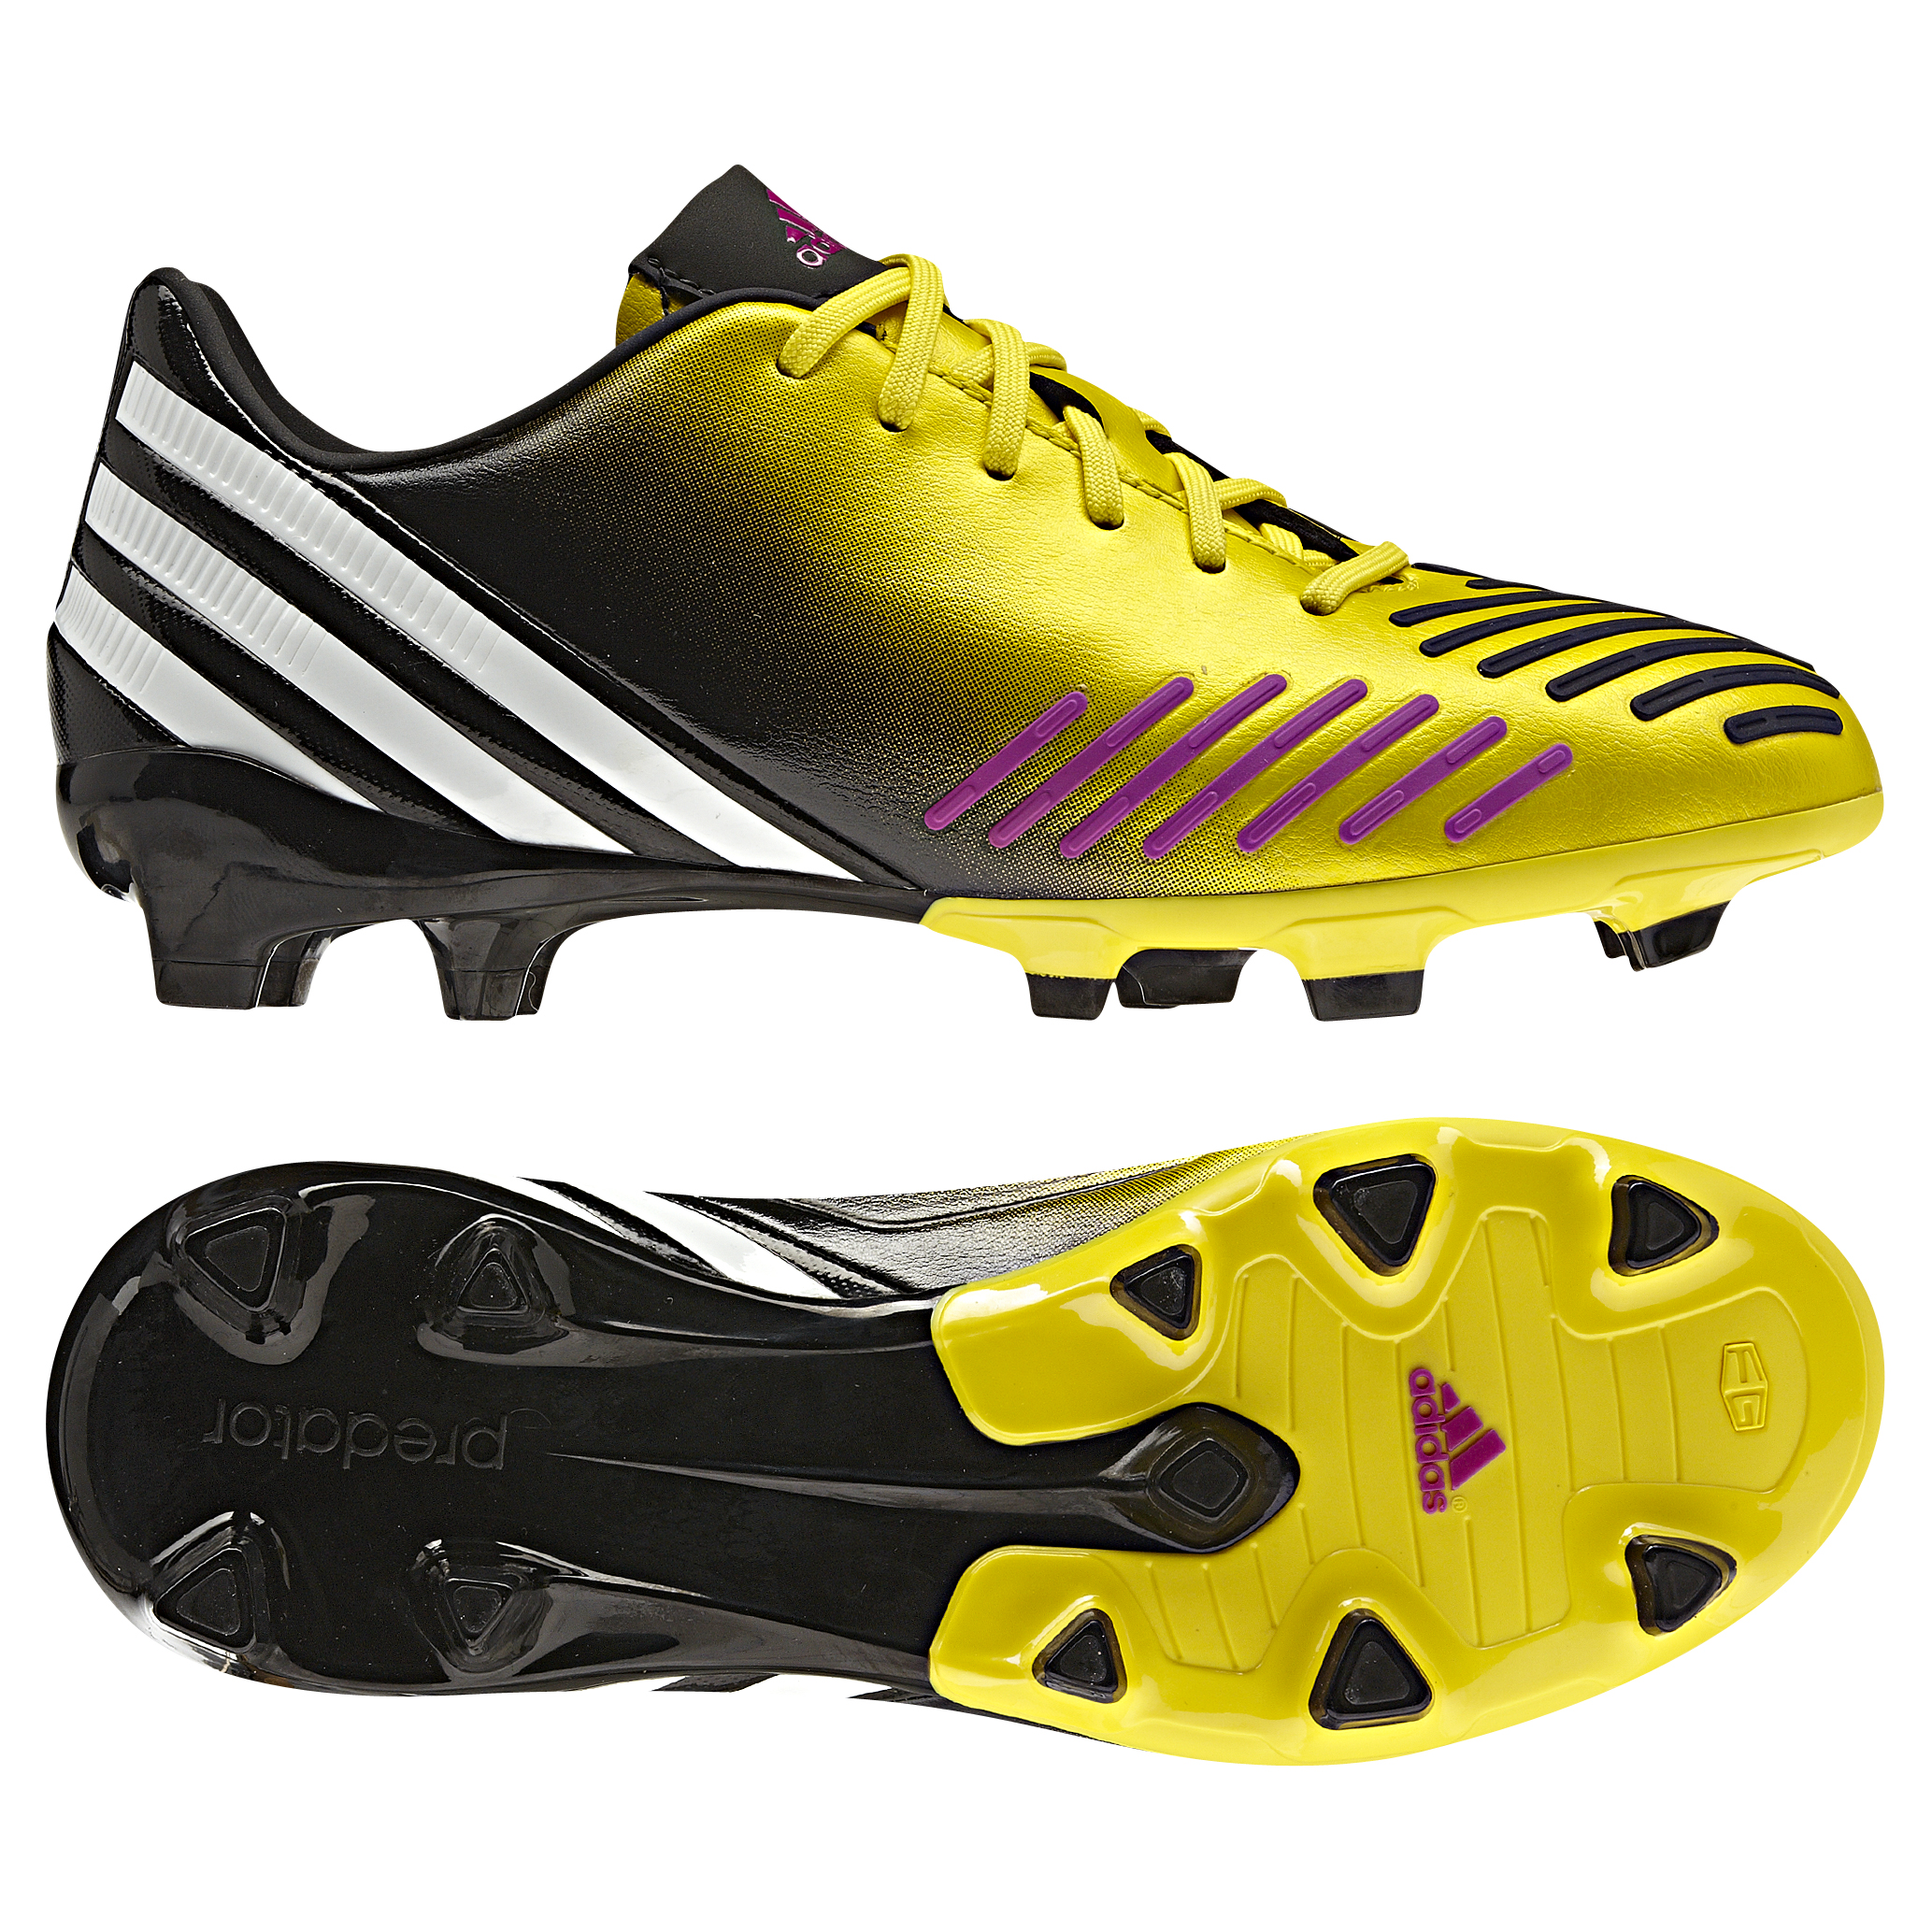 adidas Predator Absolion LZ TRX Firm Ground Football Boots - Vivid Yellow/Running White/Vivid Pink - Kids